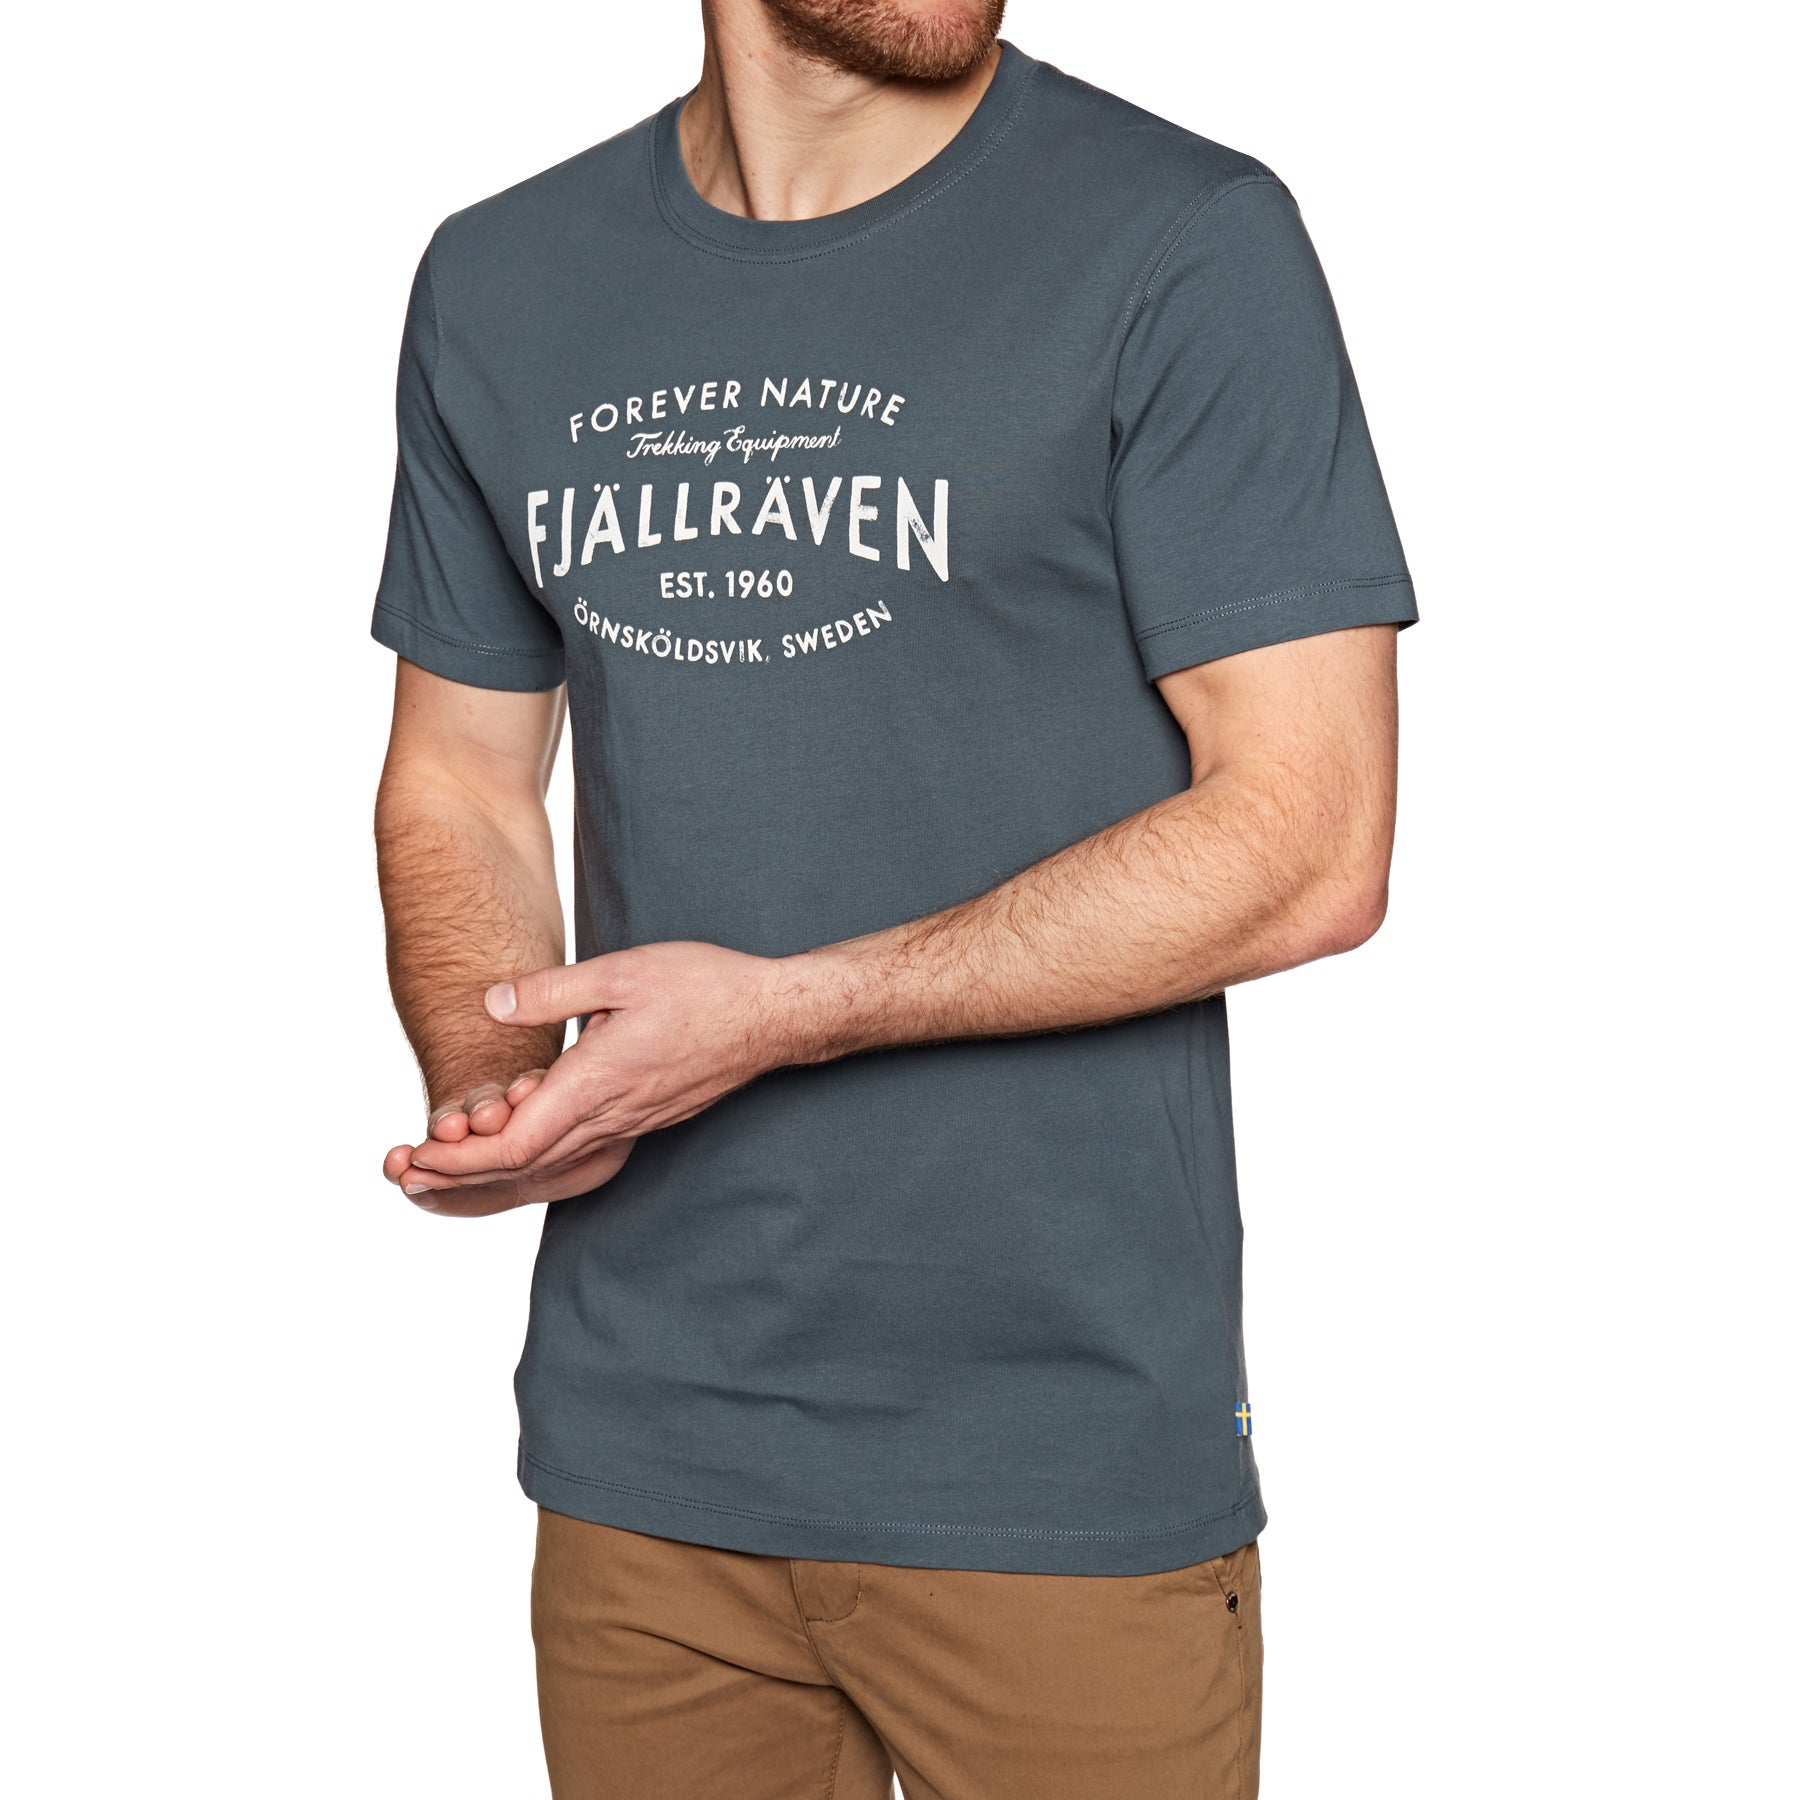 Fjallraven Est. 1960 Short Sleeve T-Shirt - Dusk